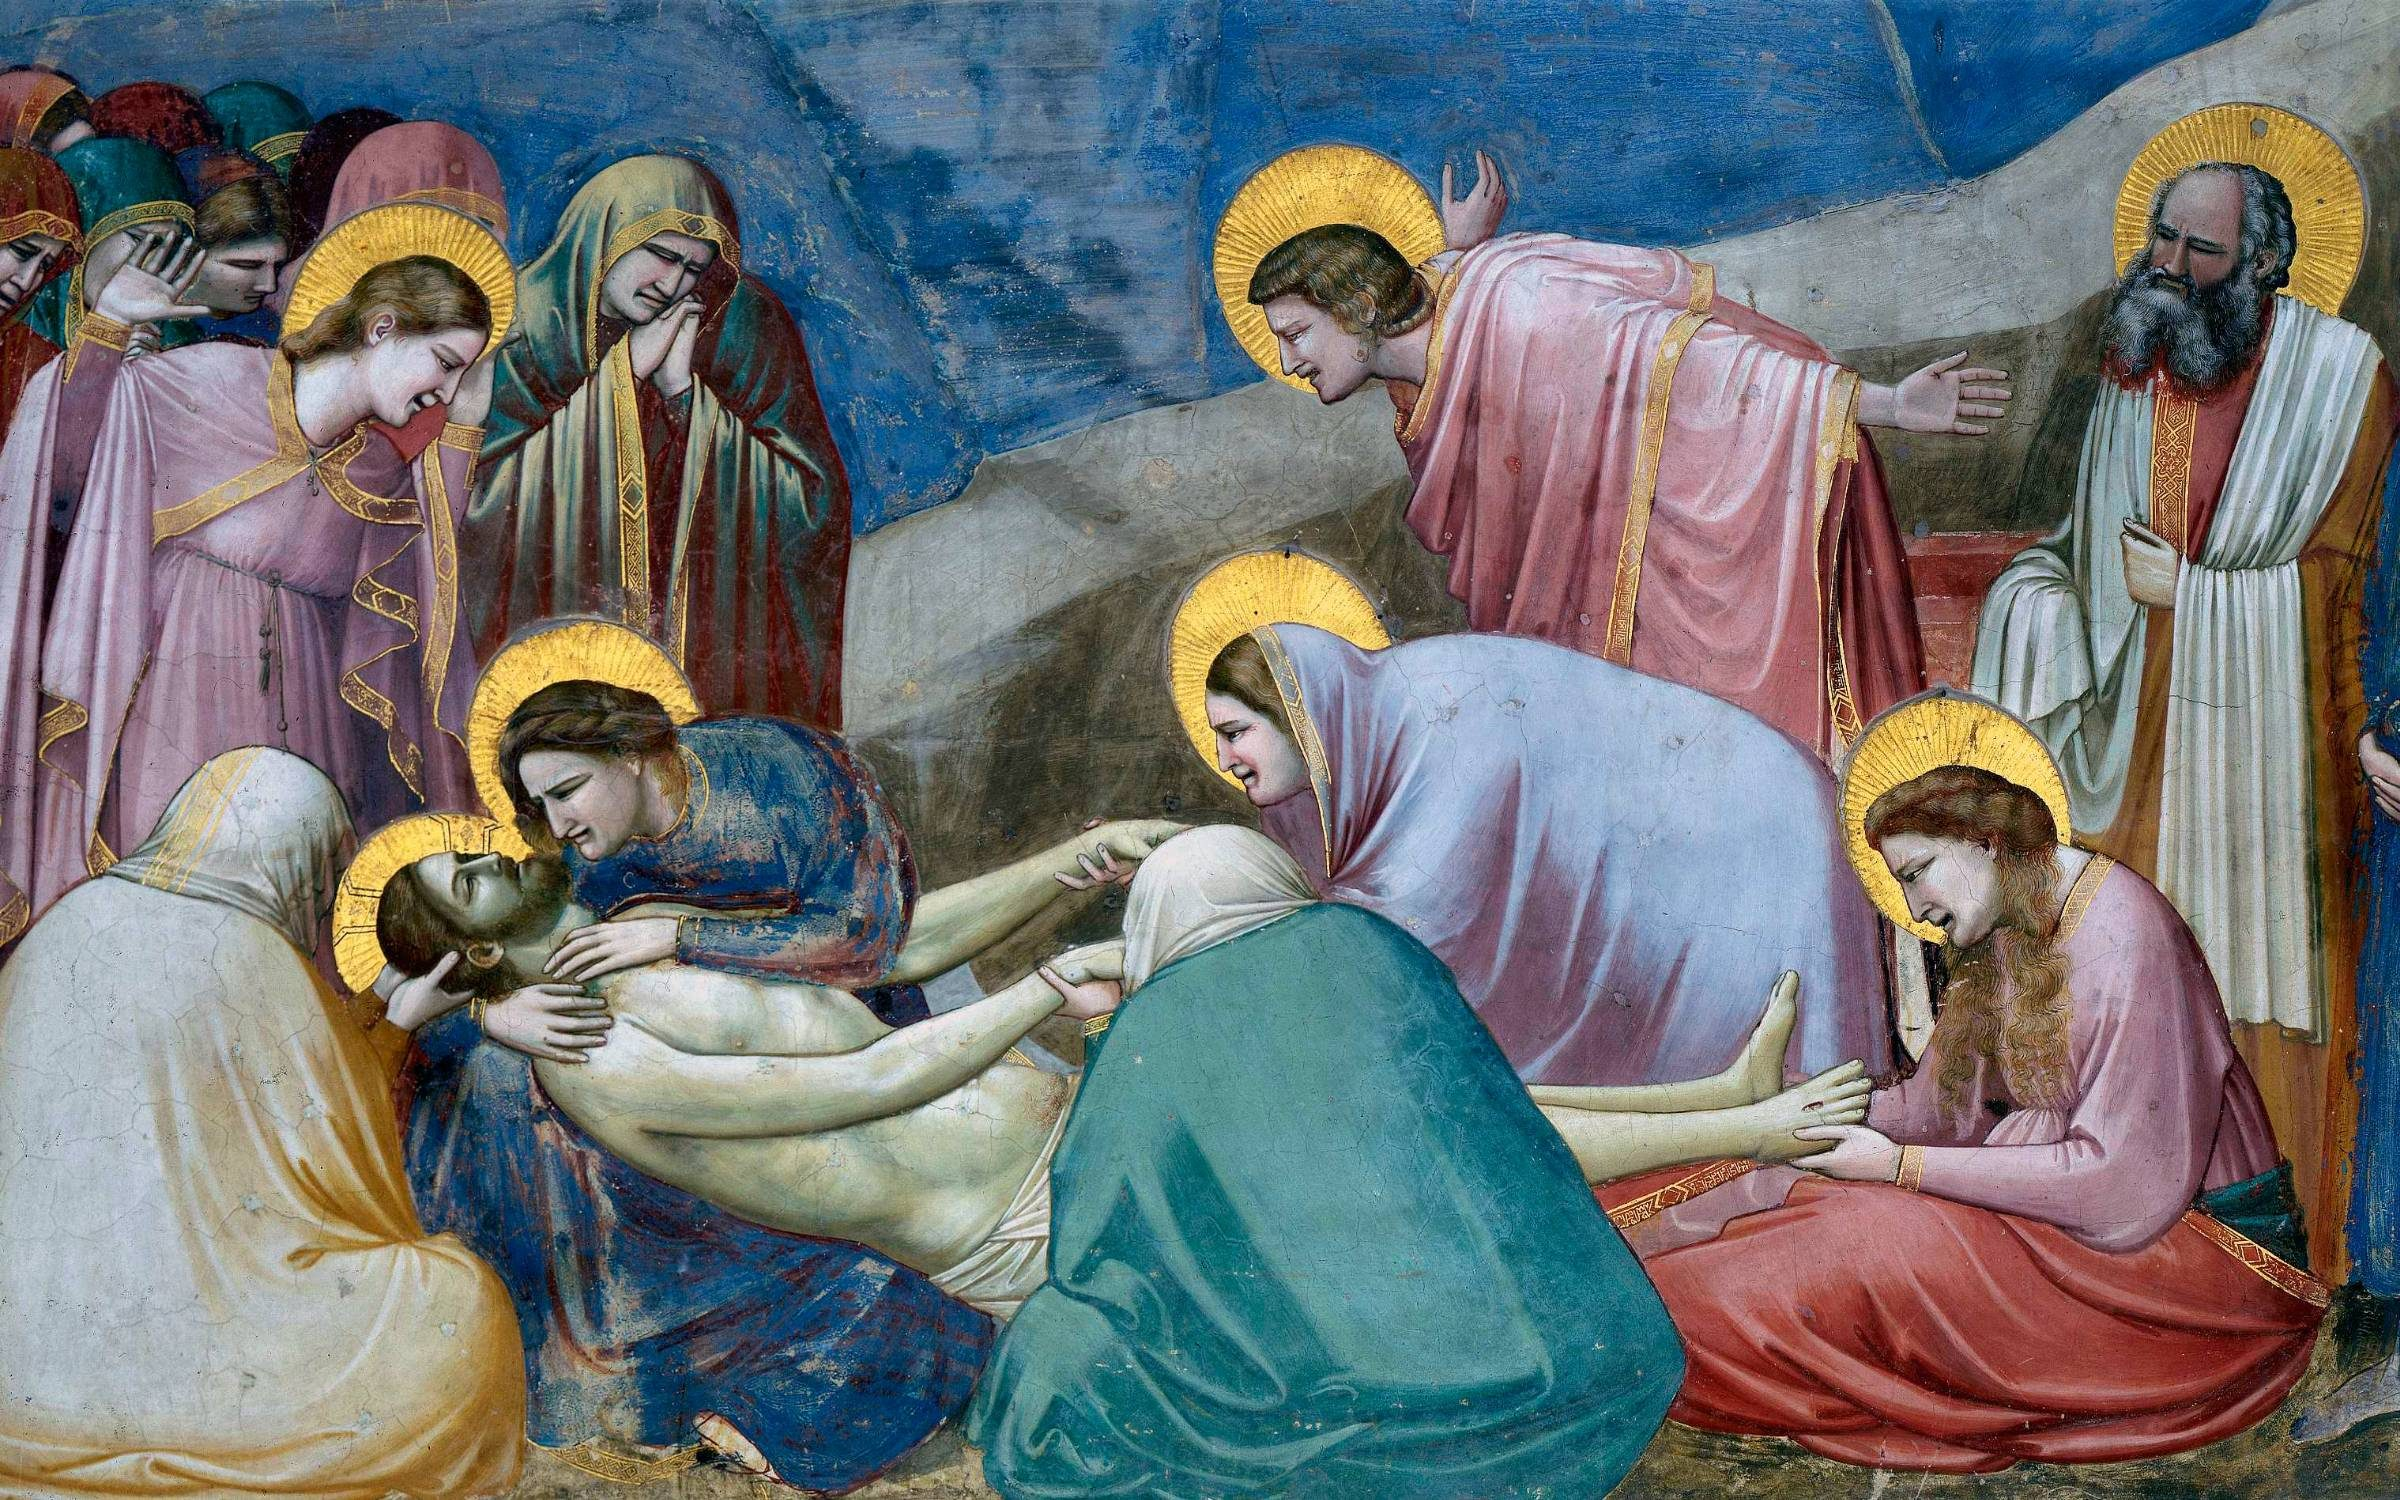 Lamentation for the Dead Christ, a fresco by Giotto (1267-1337).